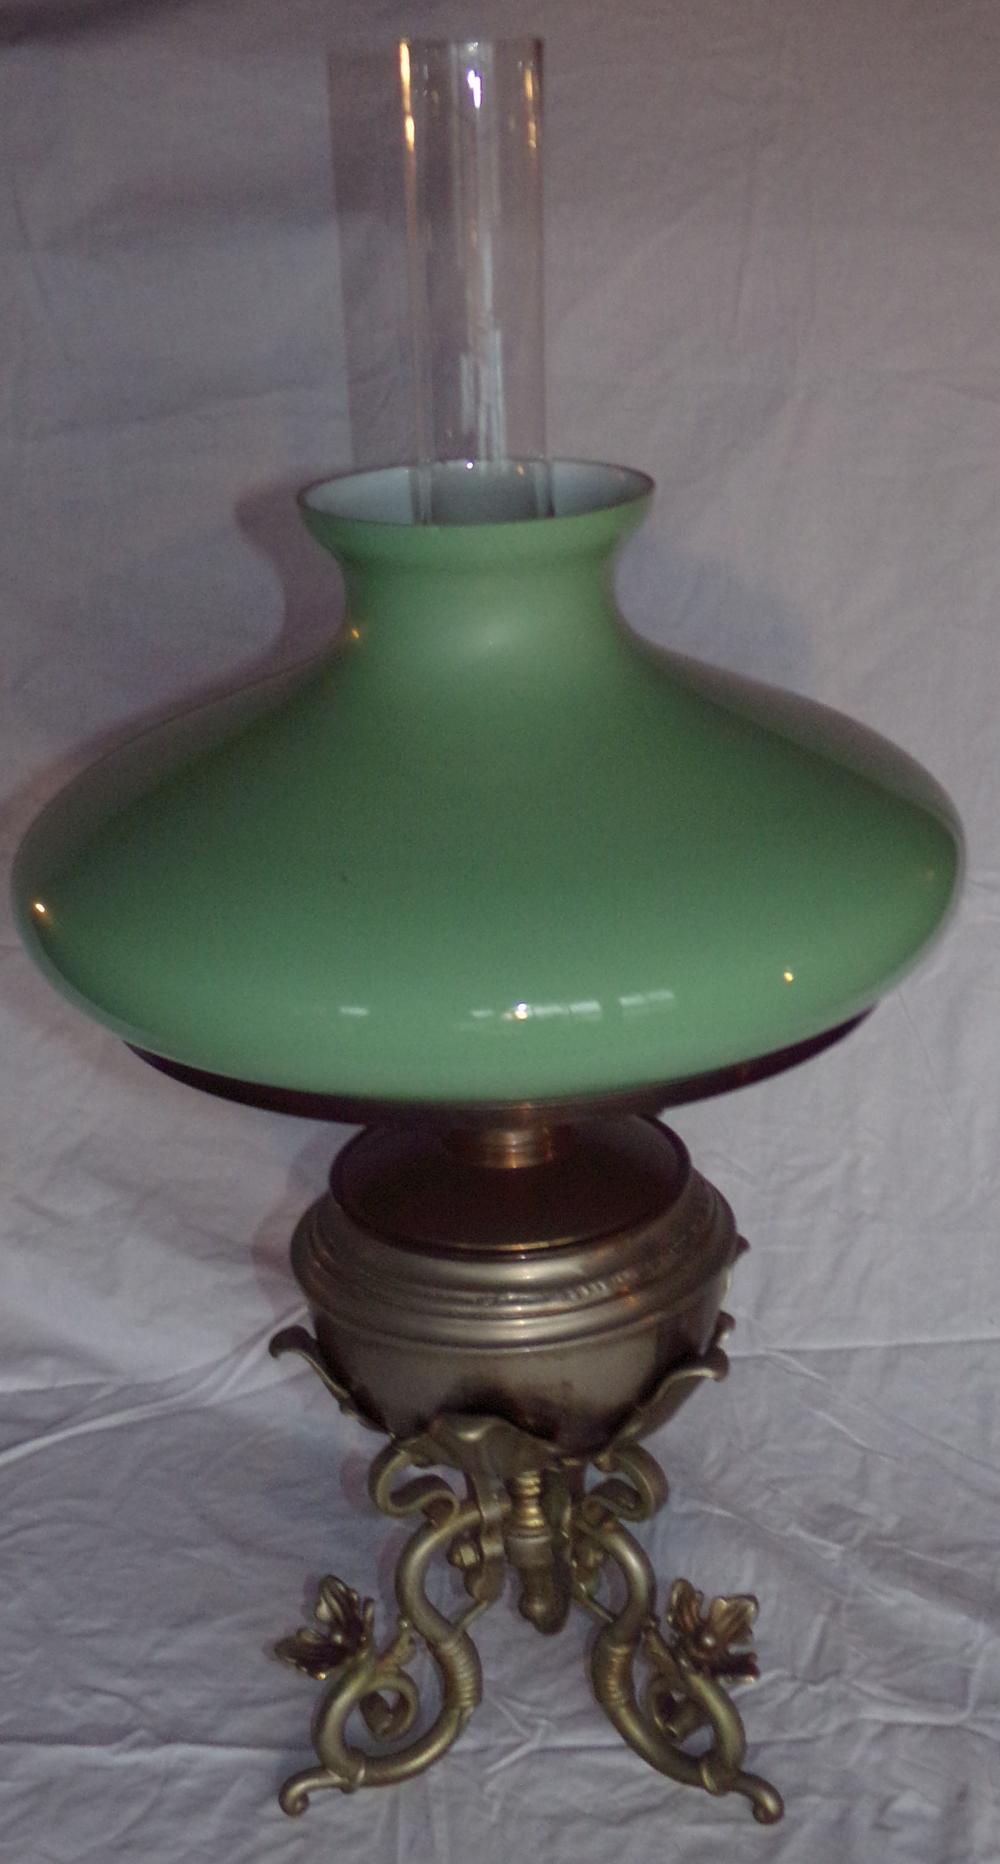 "Oil lamp having a light green cased glass shade & chimney on an ornate nickel-plated base with flower petals ending in fancy scrolled feet, font appears to be partially repaired, slight chip on top of shade, electrified, 28 ¼"" T with chimney x 8 ½ diameter"